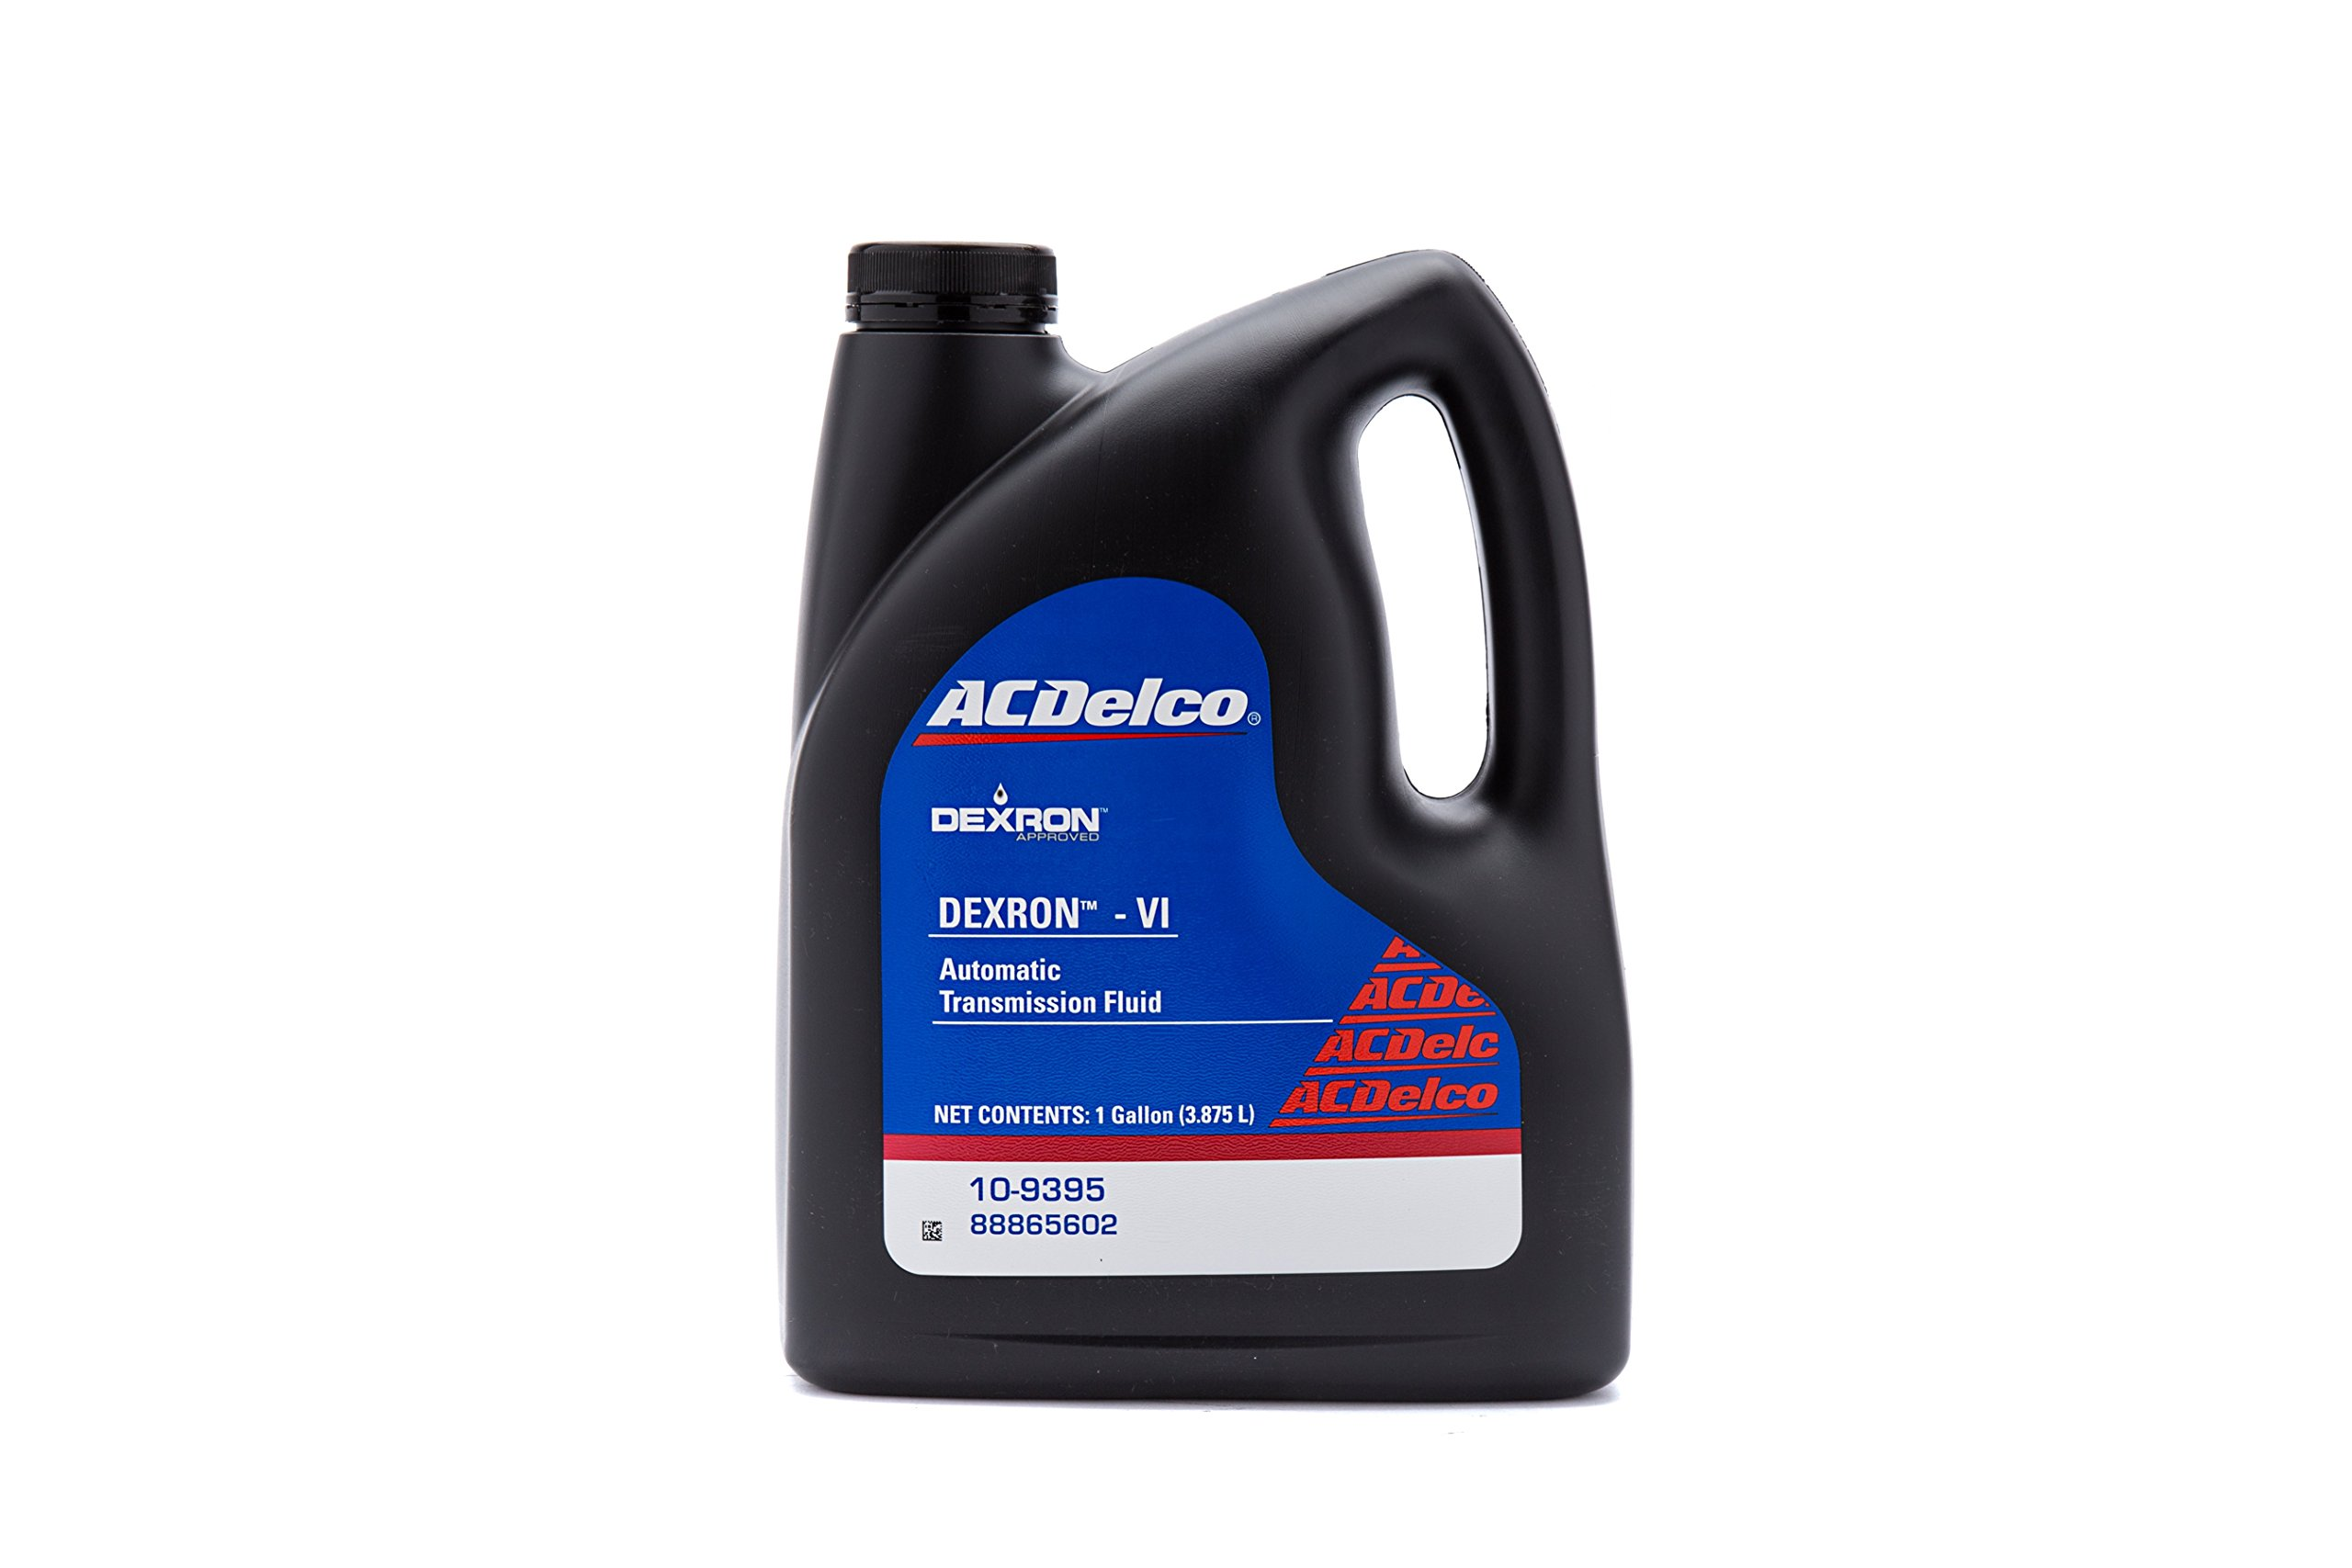 ACDelco 10-9395 Dexron VI Automatic Transmission Fluid - 1 gal by ACDelco